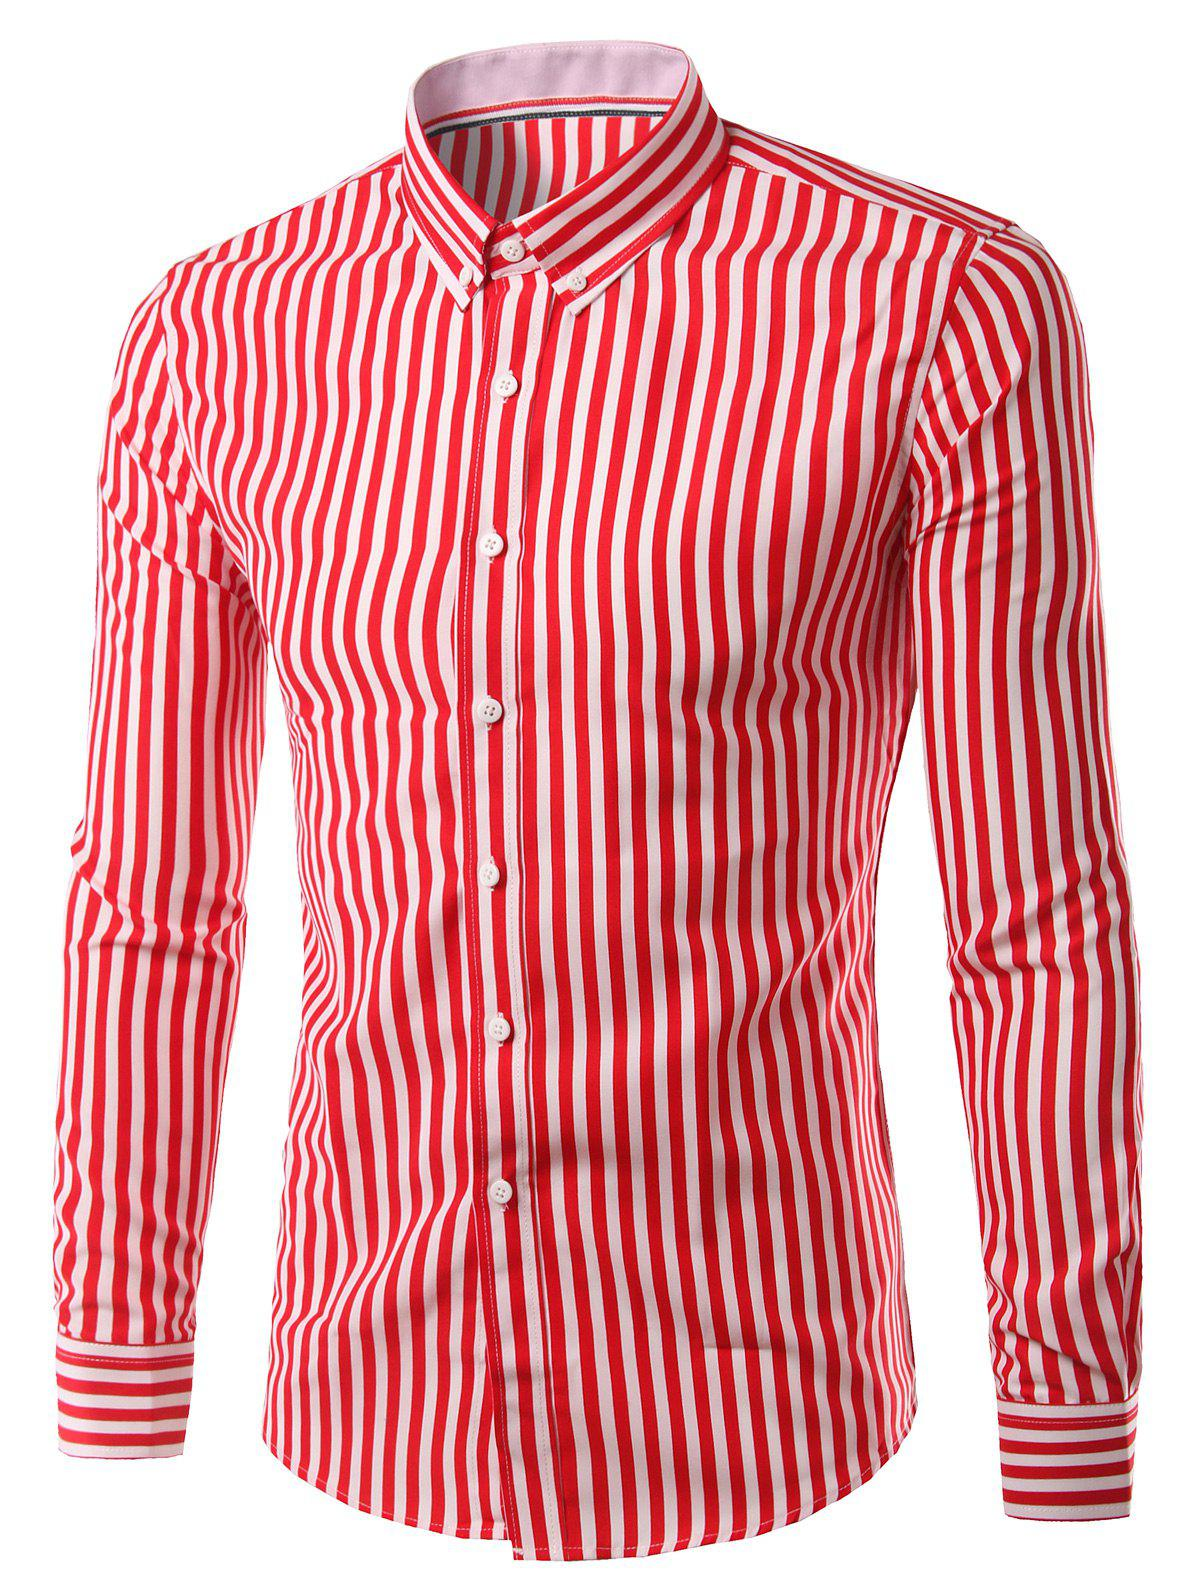 Turn-Down Collar Plus Size Vertical Stripe Long Sleeve Button-Down Men's Shirt - RED 5XL